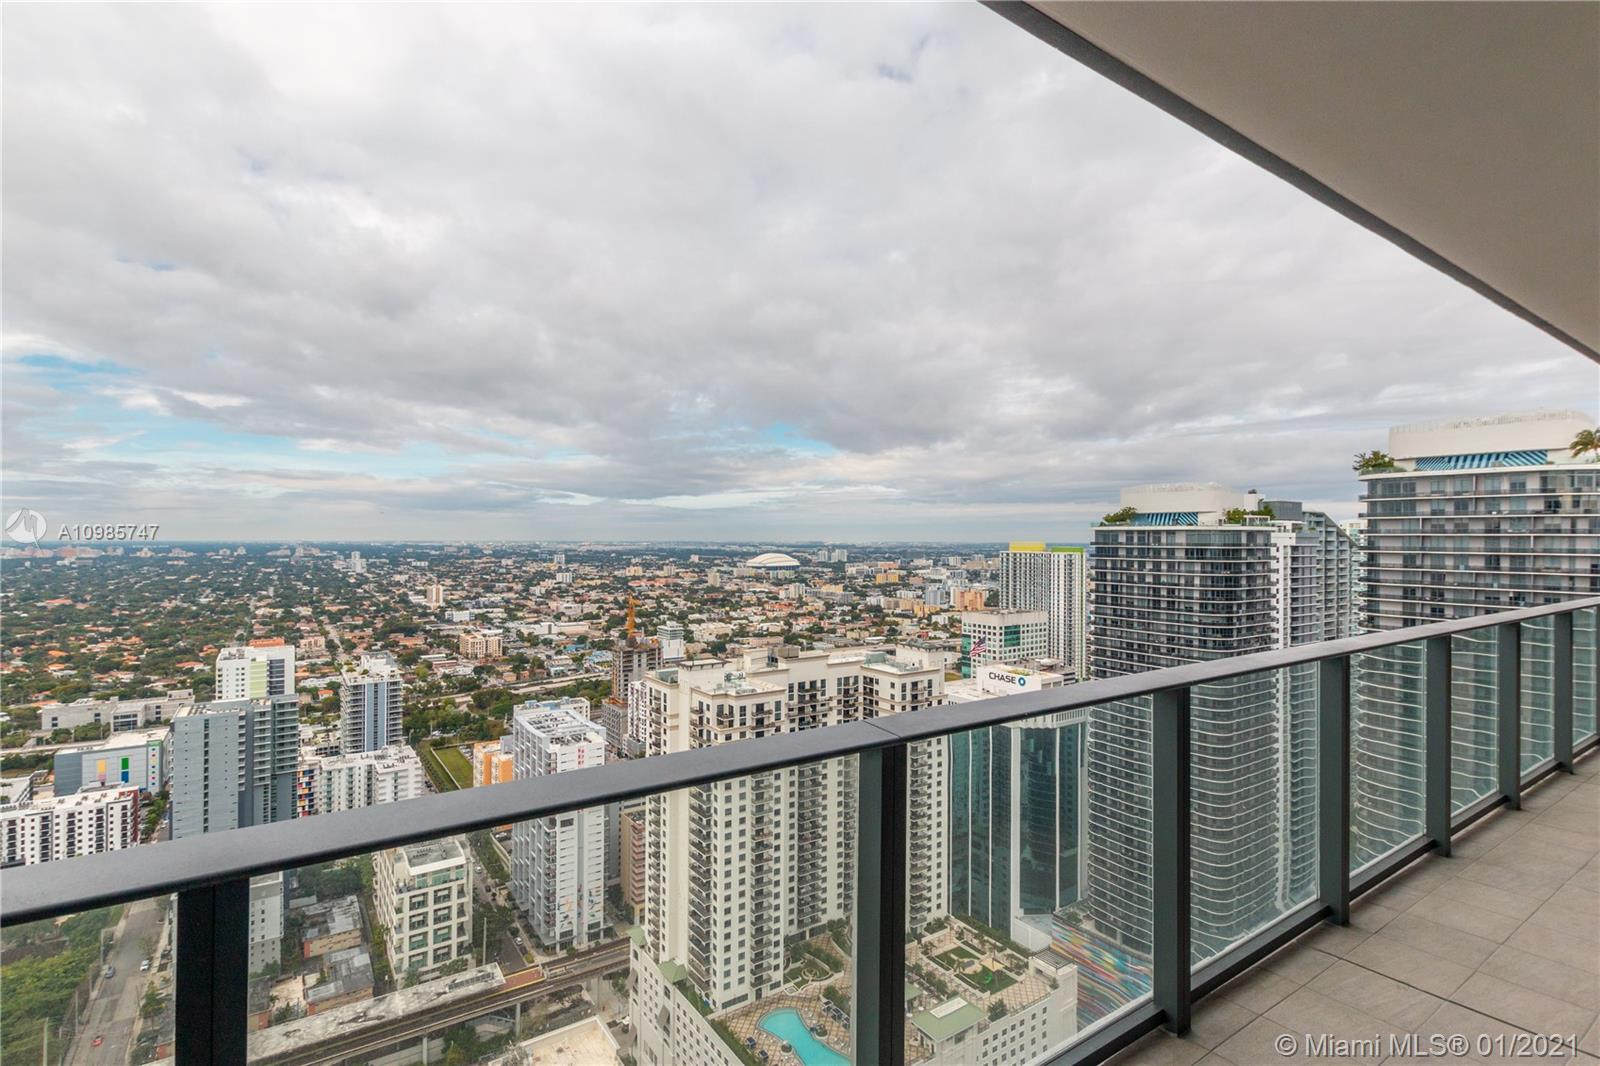 Be the first to live in this, 1,804 SF Living Area, and 355 SF terraces with unobstructed, endless west views over Miami and beyond. This unit is two units combined and it features 3 bed 3.5 bath plus den. Each bedroom has high quality built-in closets and breathtaking views. Unit includes with Miele appliances, Italian cabinetry, keyless door entry technology, tile looking wood floors, etc. Amenities are lounge pool table, movie theater, lap pool, kids room and more. As well, a second rooftop swimming pool, jacuzzi, cabanas, sundeck, gym, spa, relaxation space, massage rooms. The unit comes with 2 assigned parking space and 1 free valet.